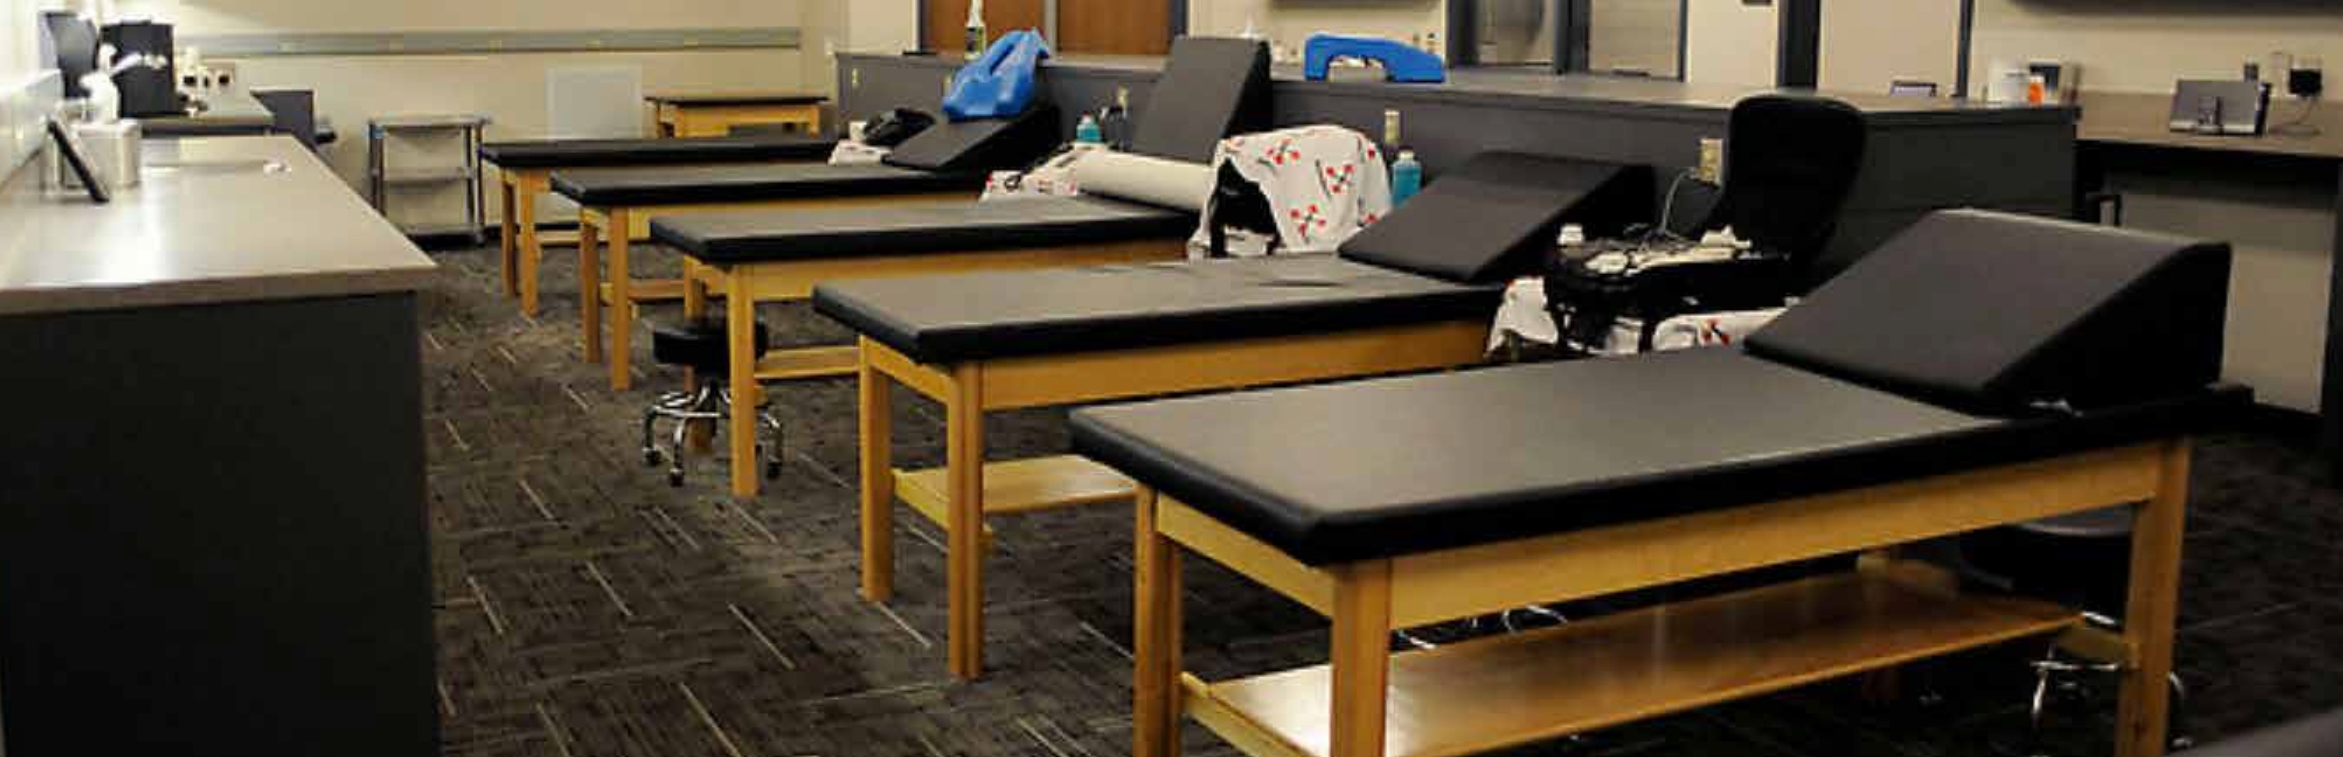 Sports Medicine & Massage Tables